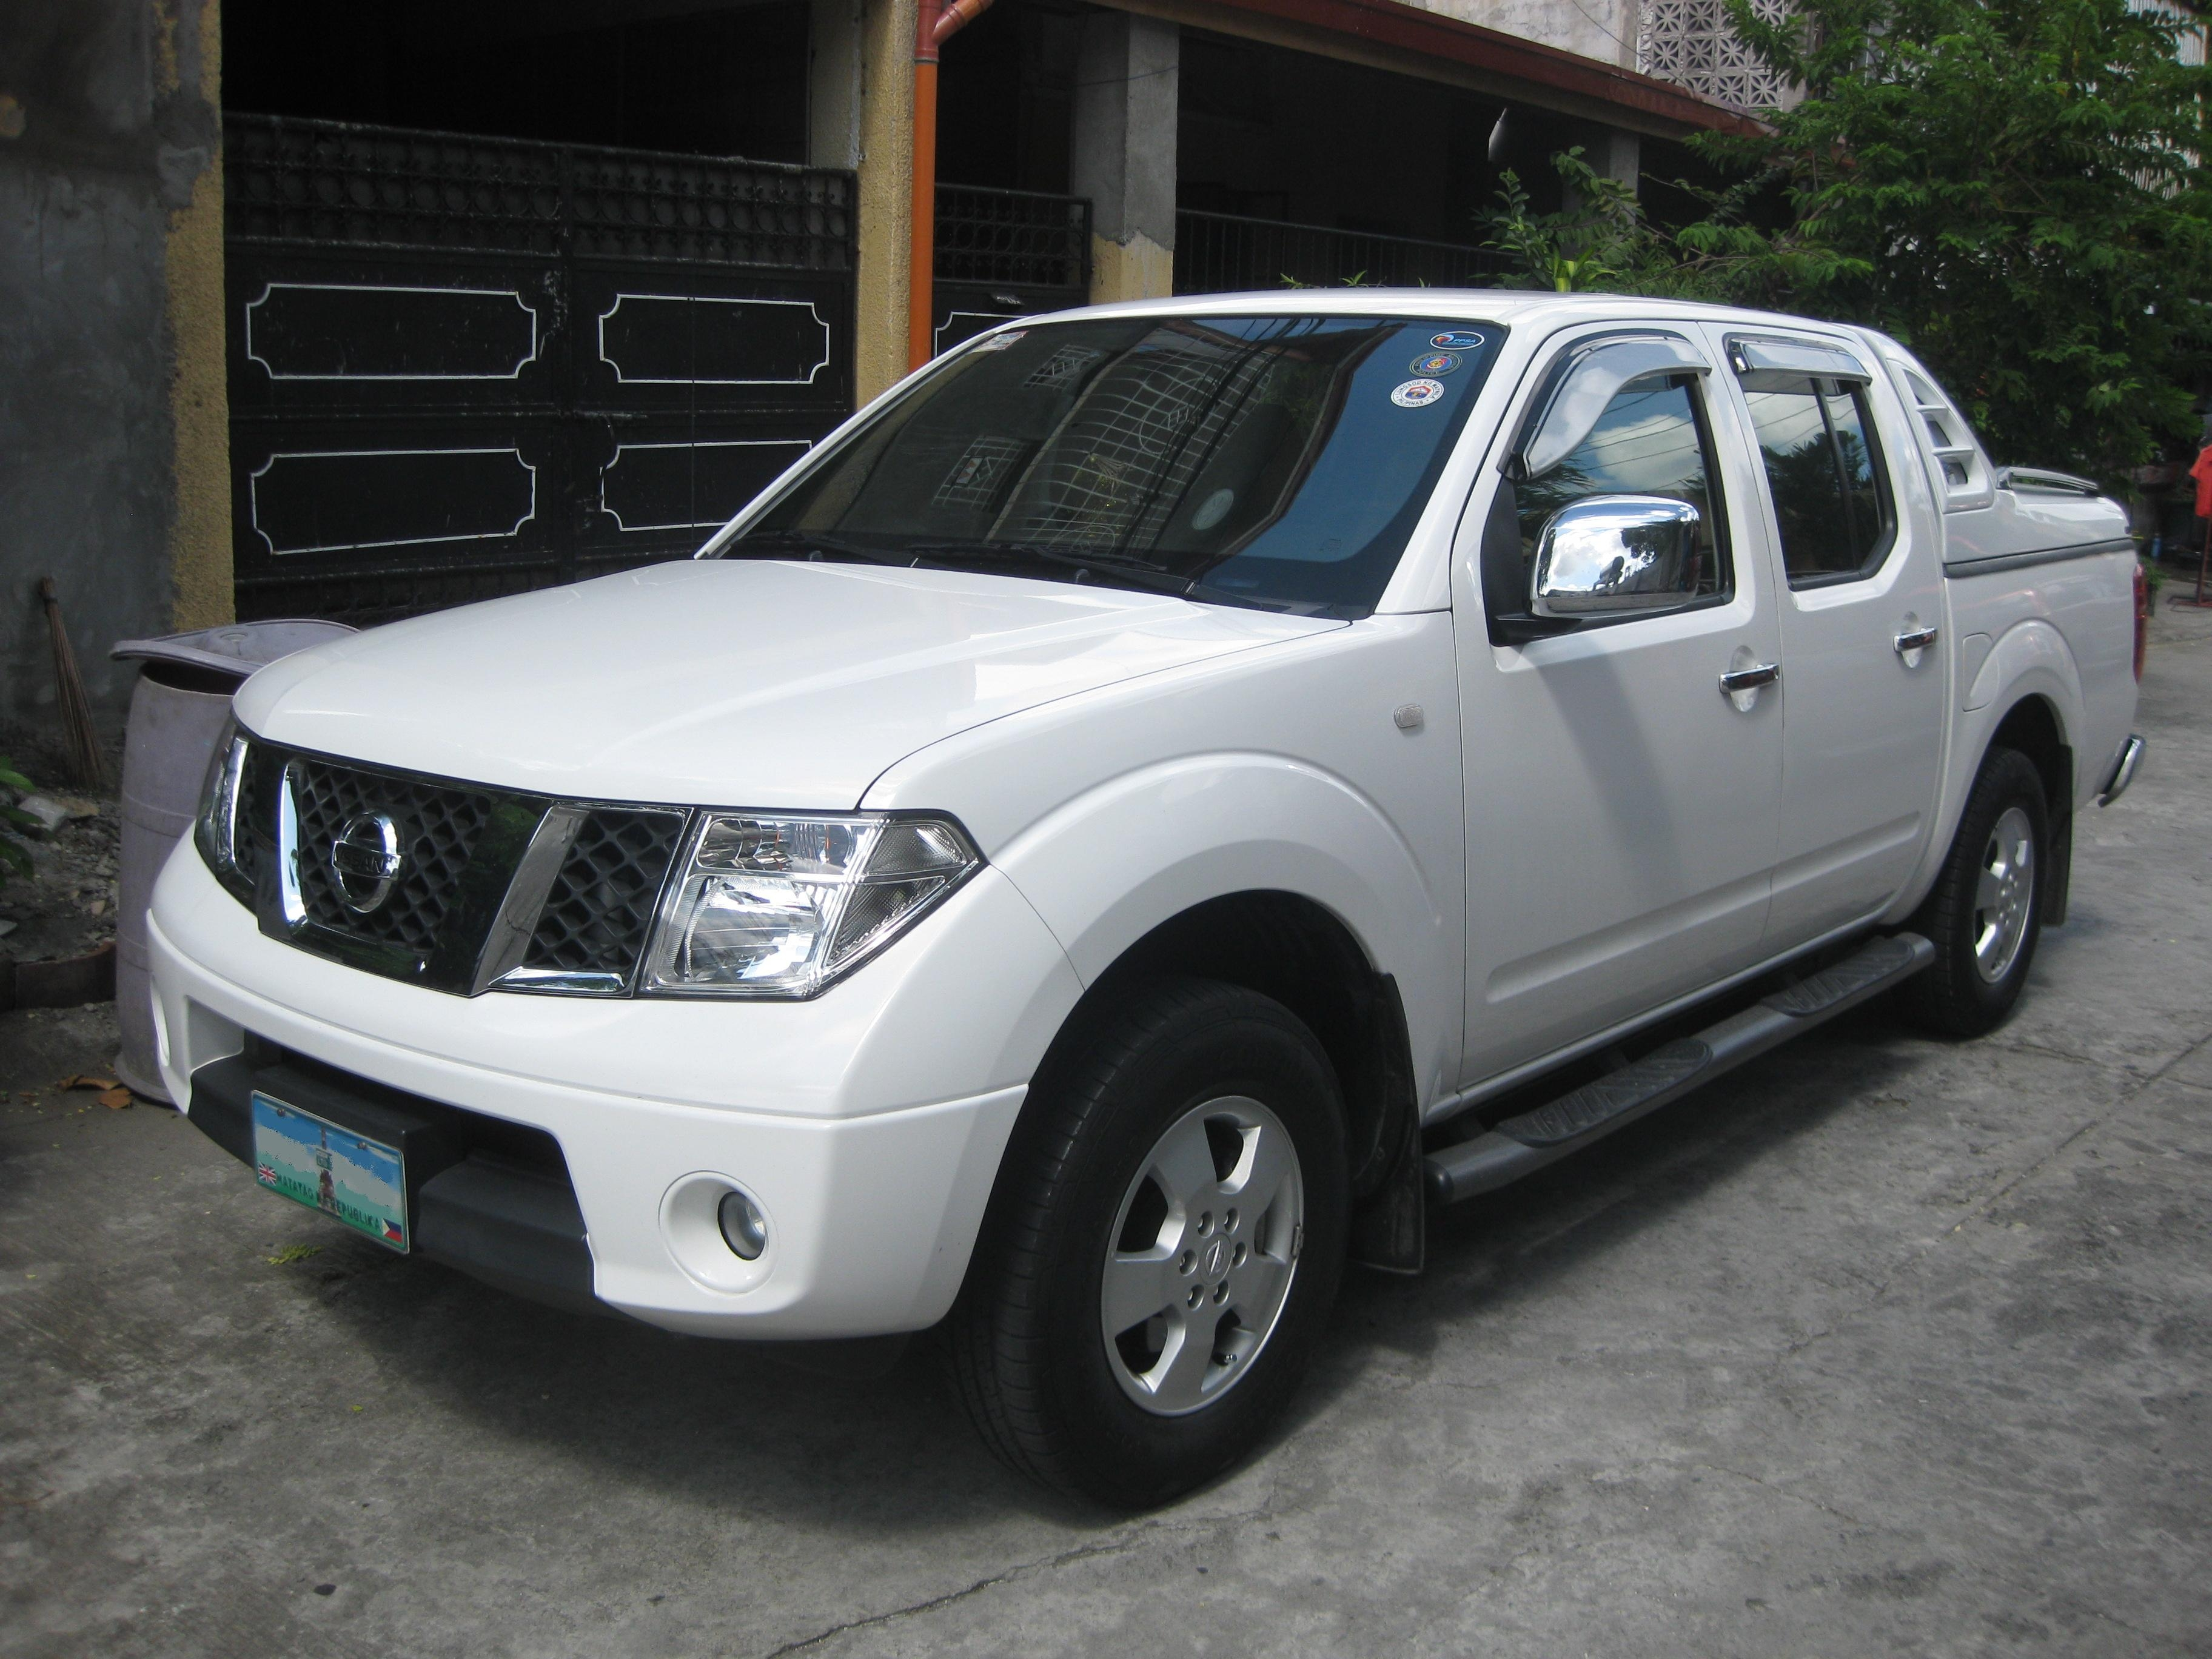 bakerstreet 2010 nissan frontier regular cab specs photos. Black Bedroom Furniture Sets. Home Design Ideas